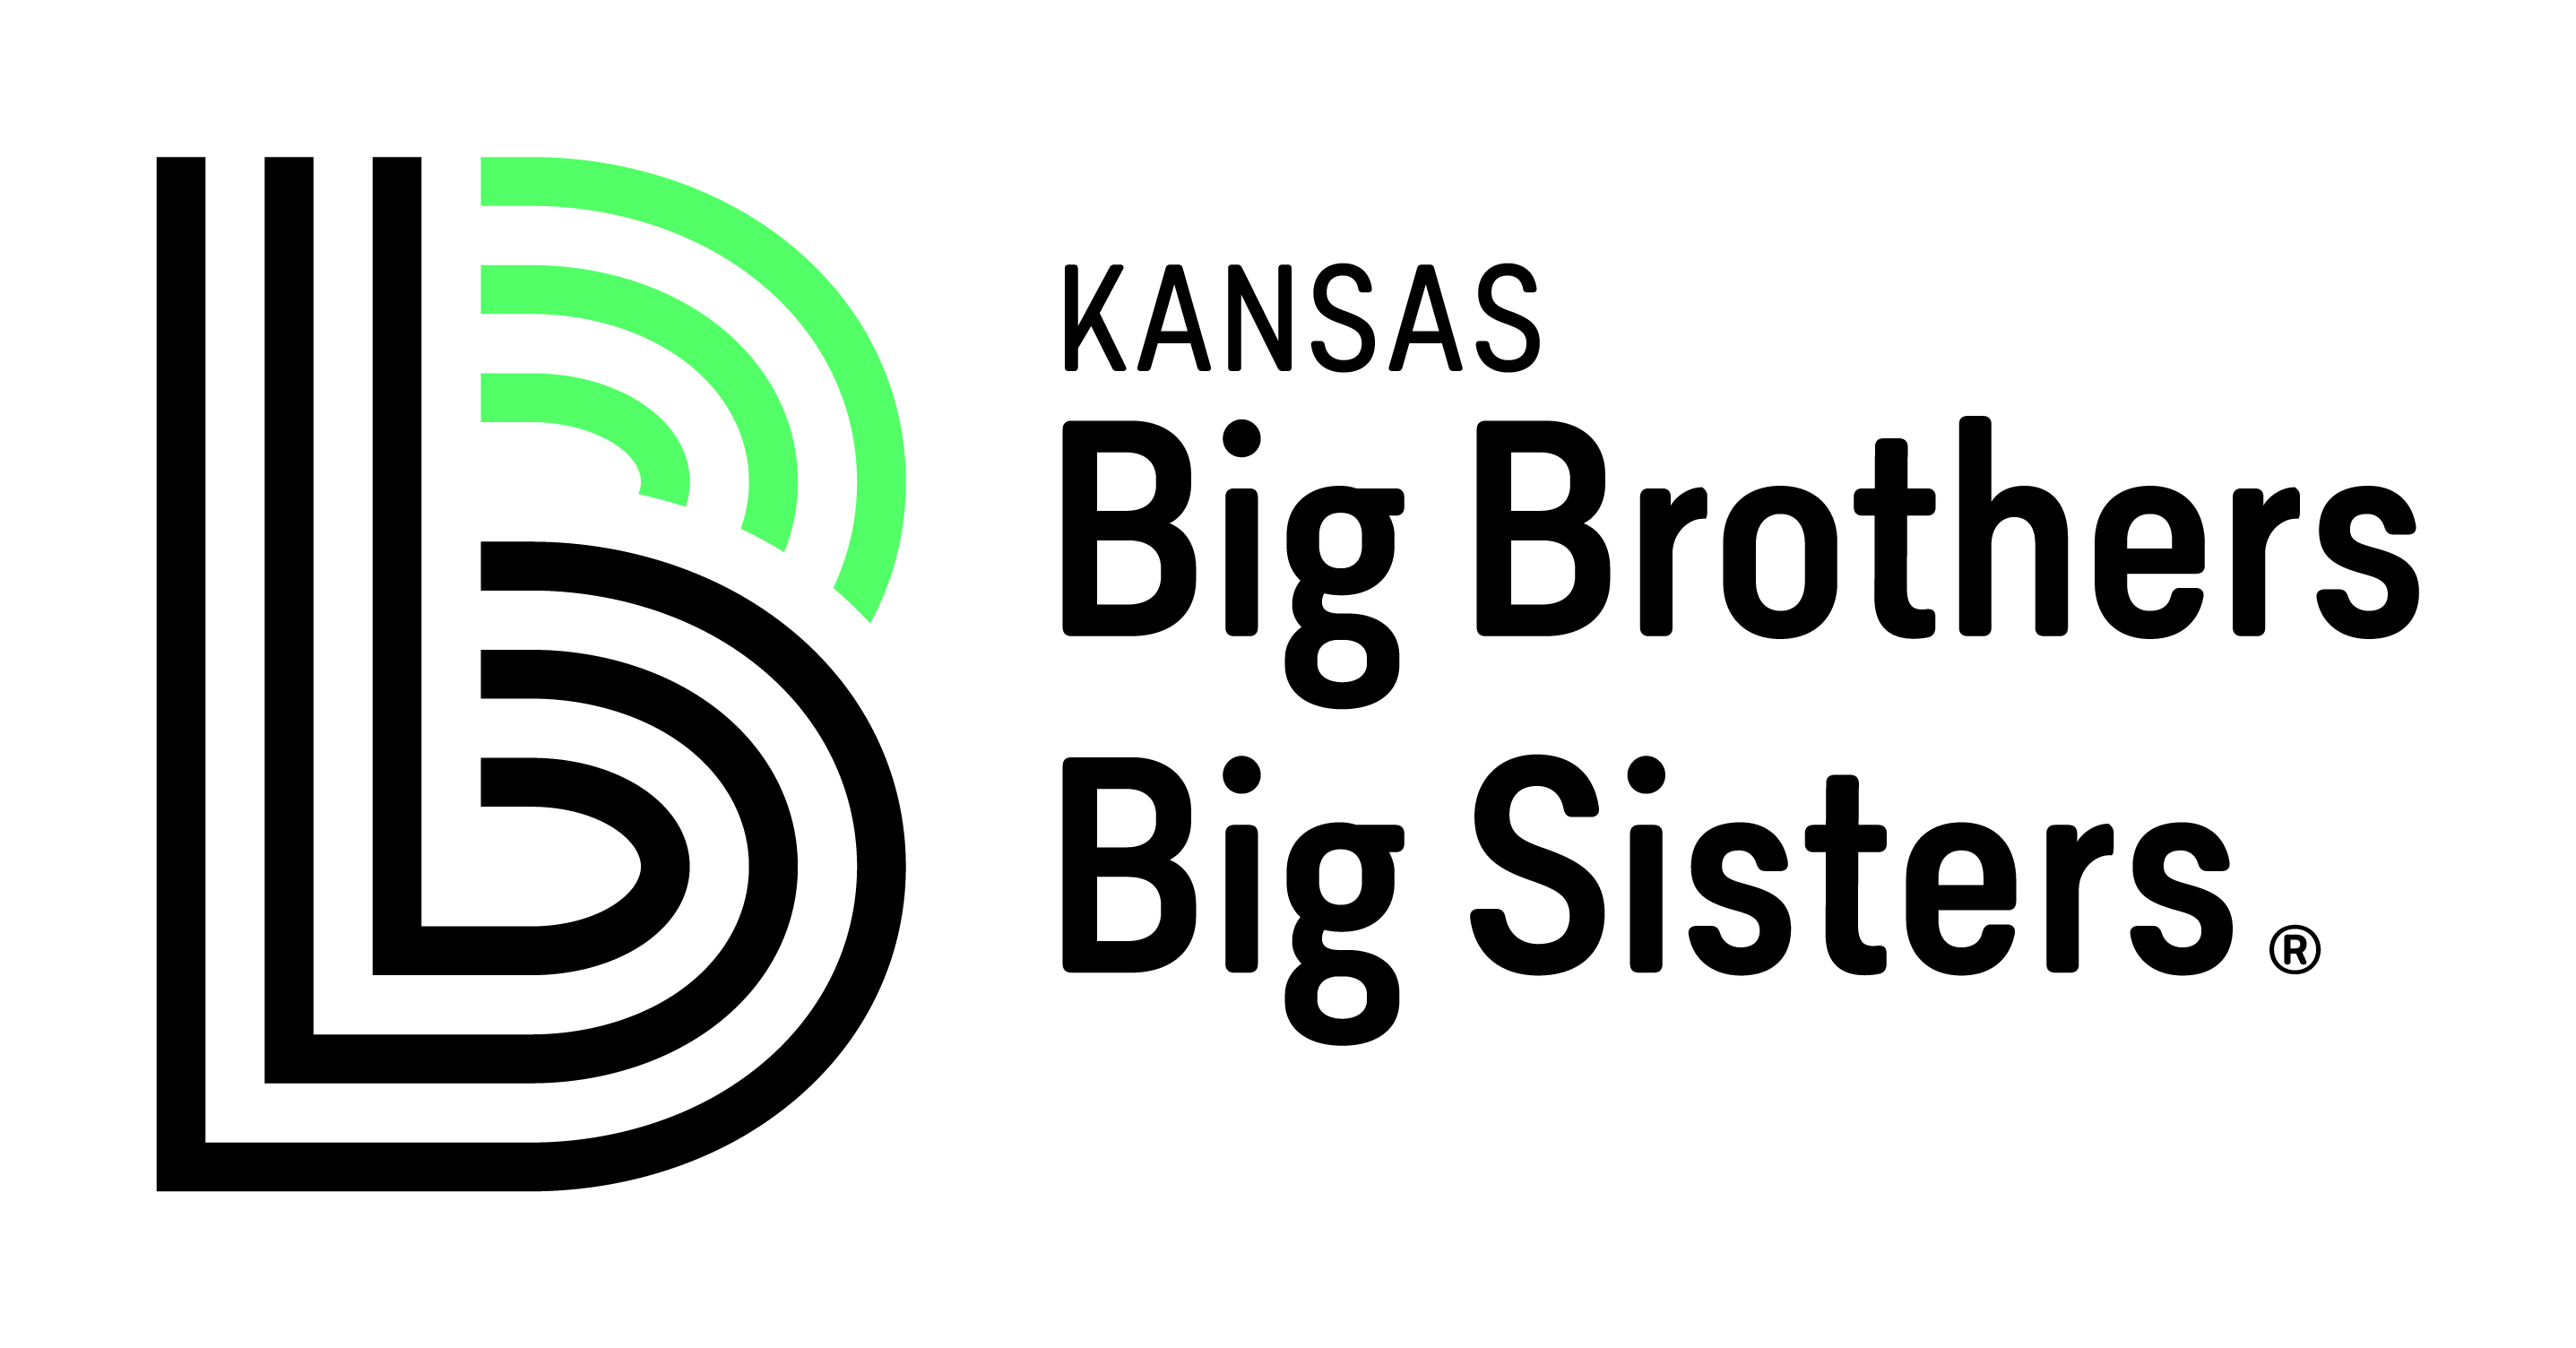 Kansas Big Brothers Big Sisters - Cowley County